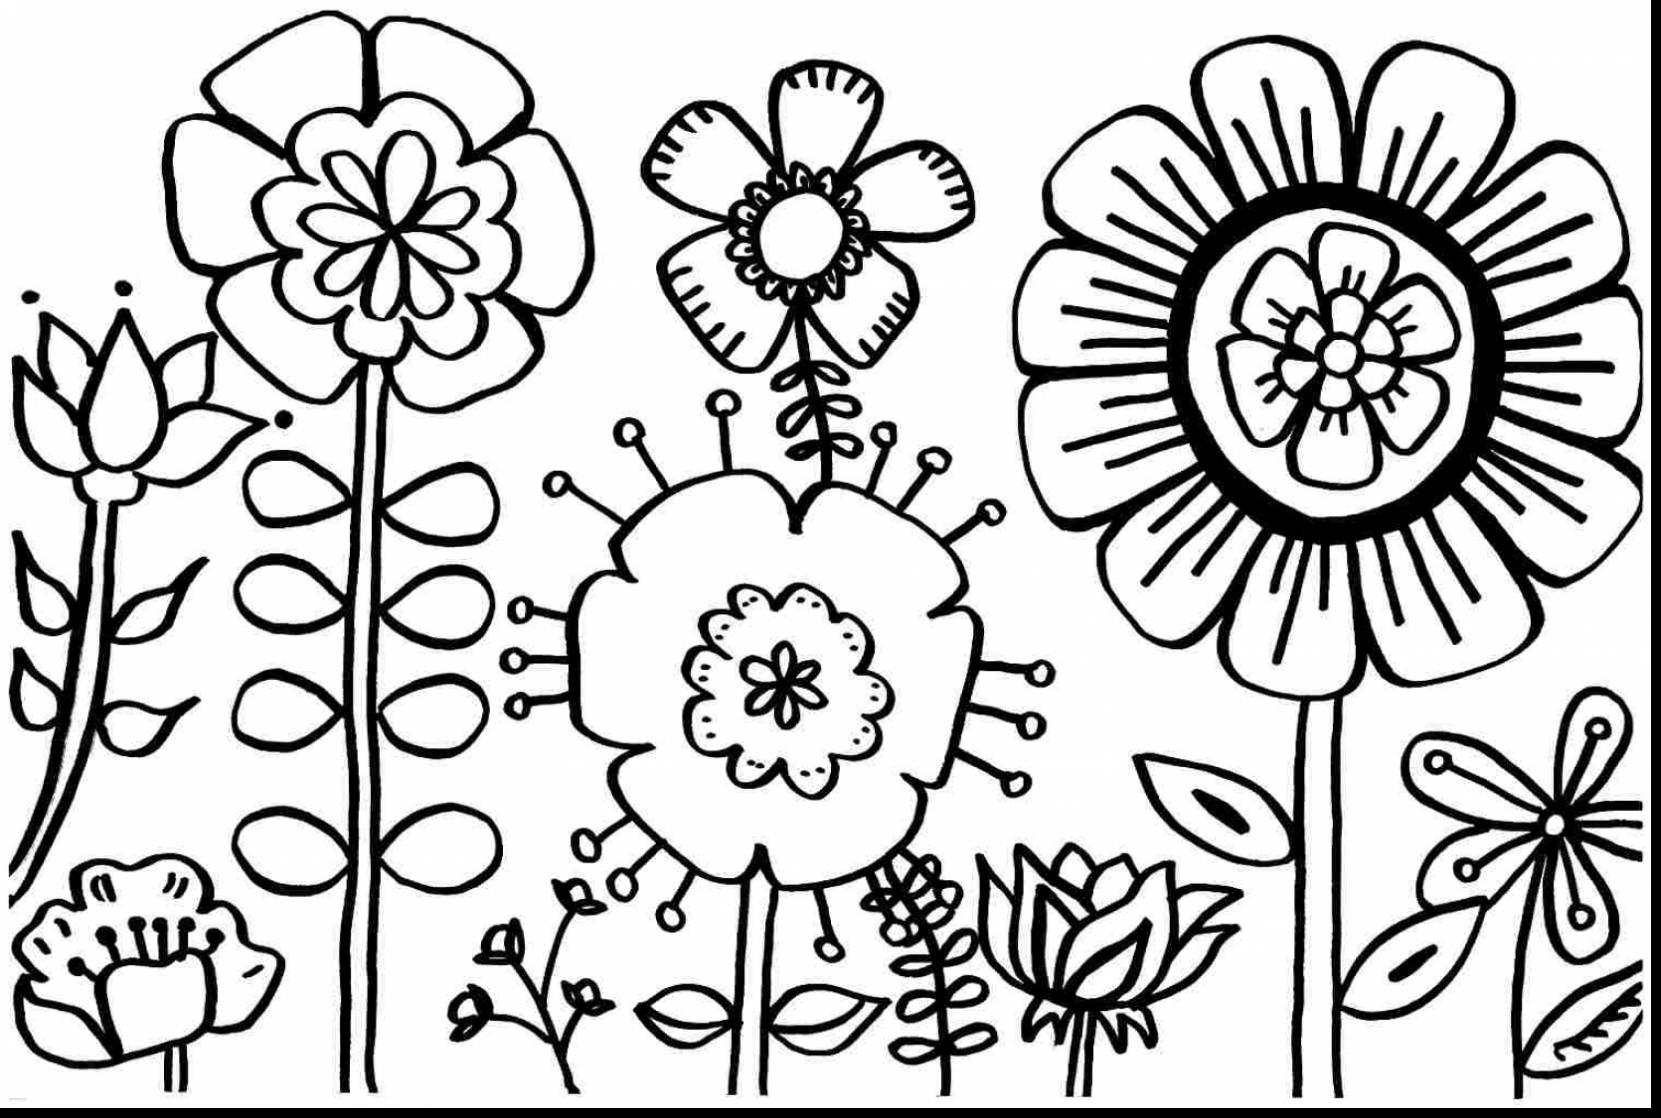 Spring Coloring Pages For Kids at GetDrawings.com | Free for ...